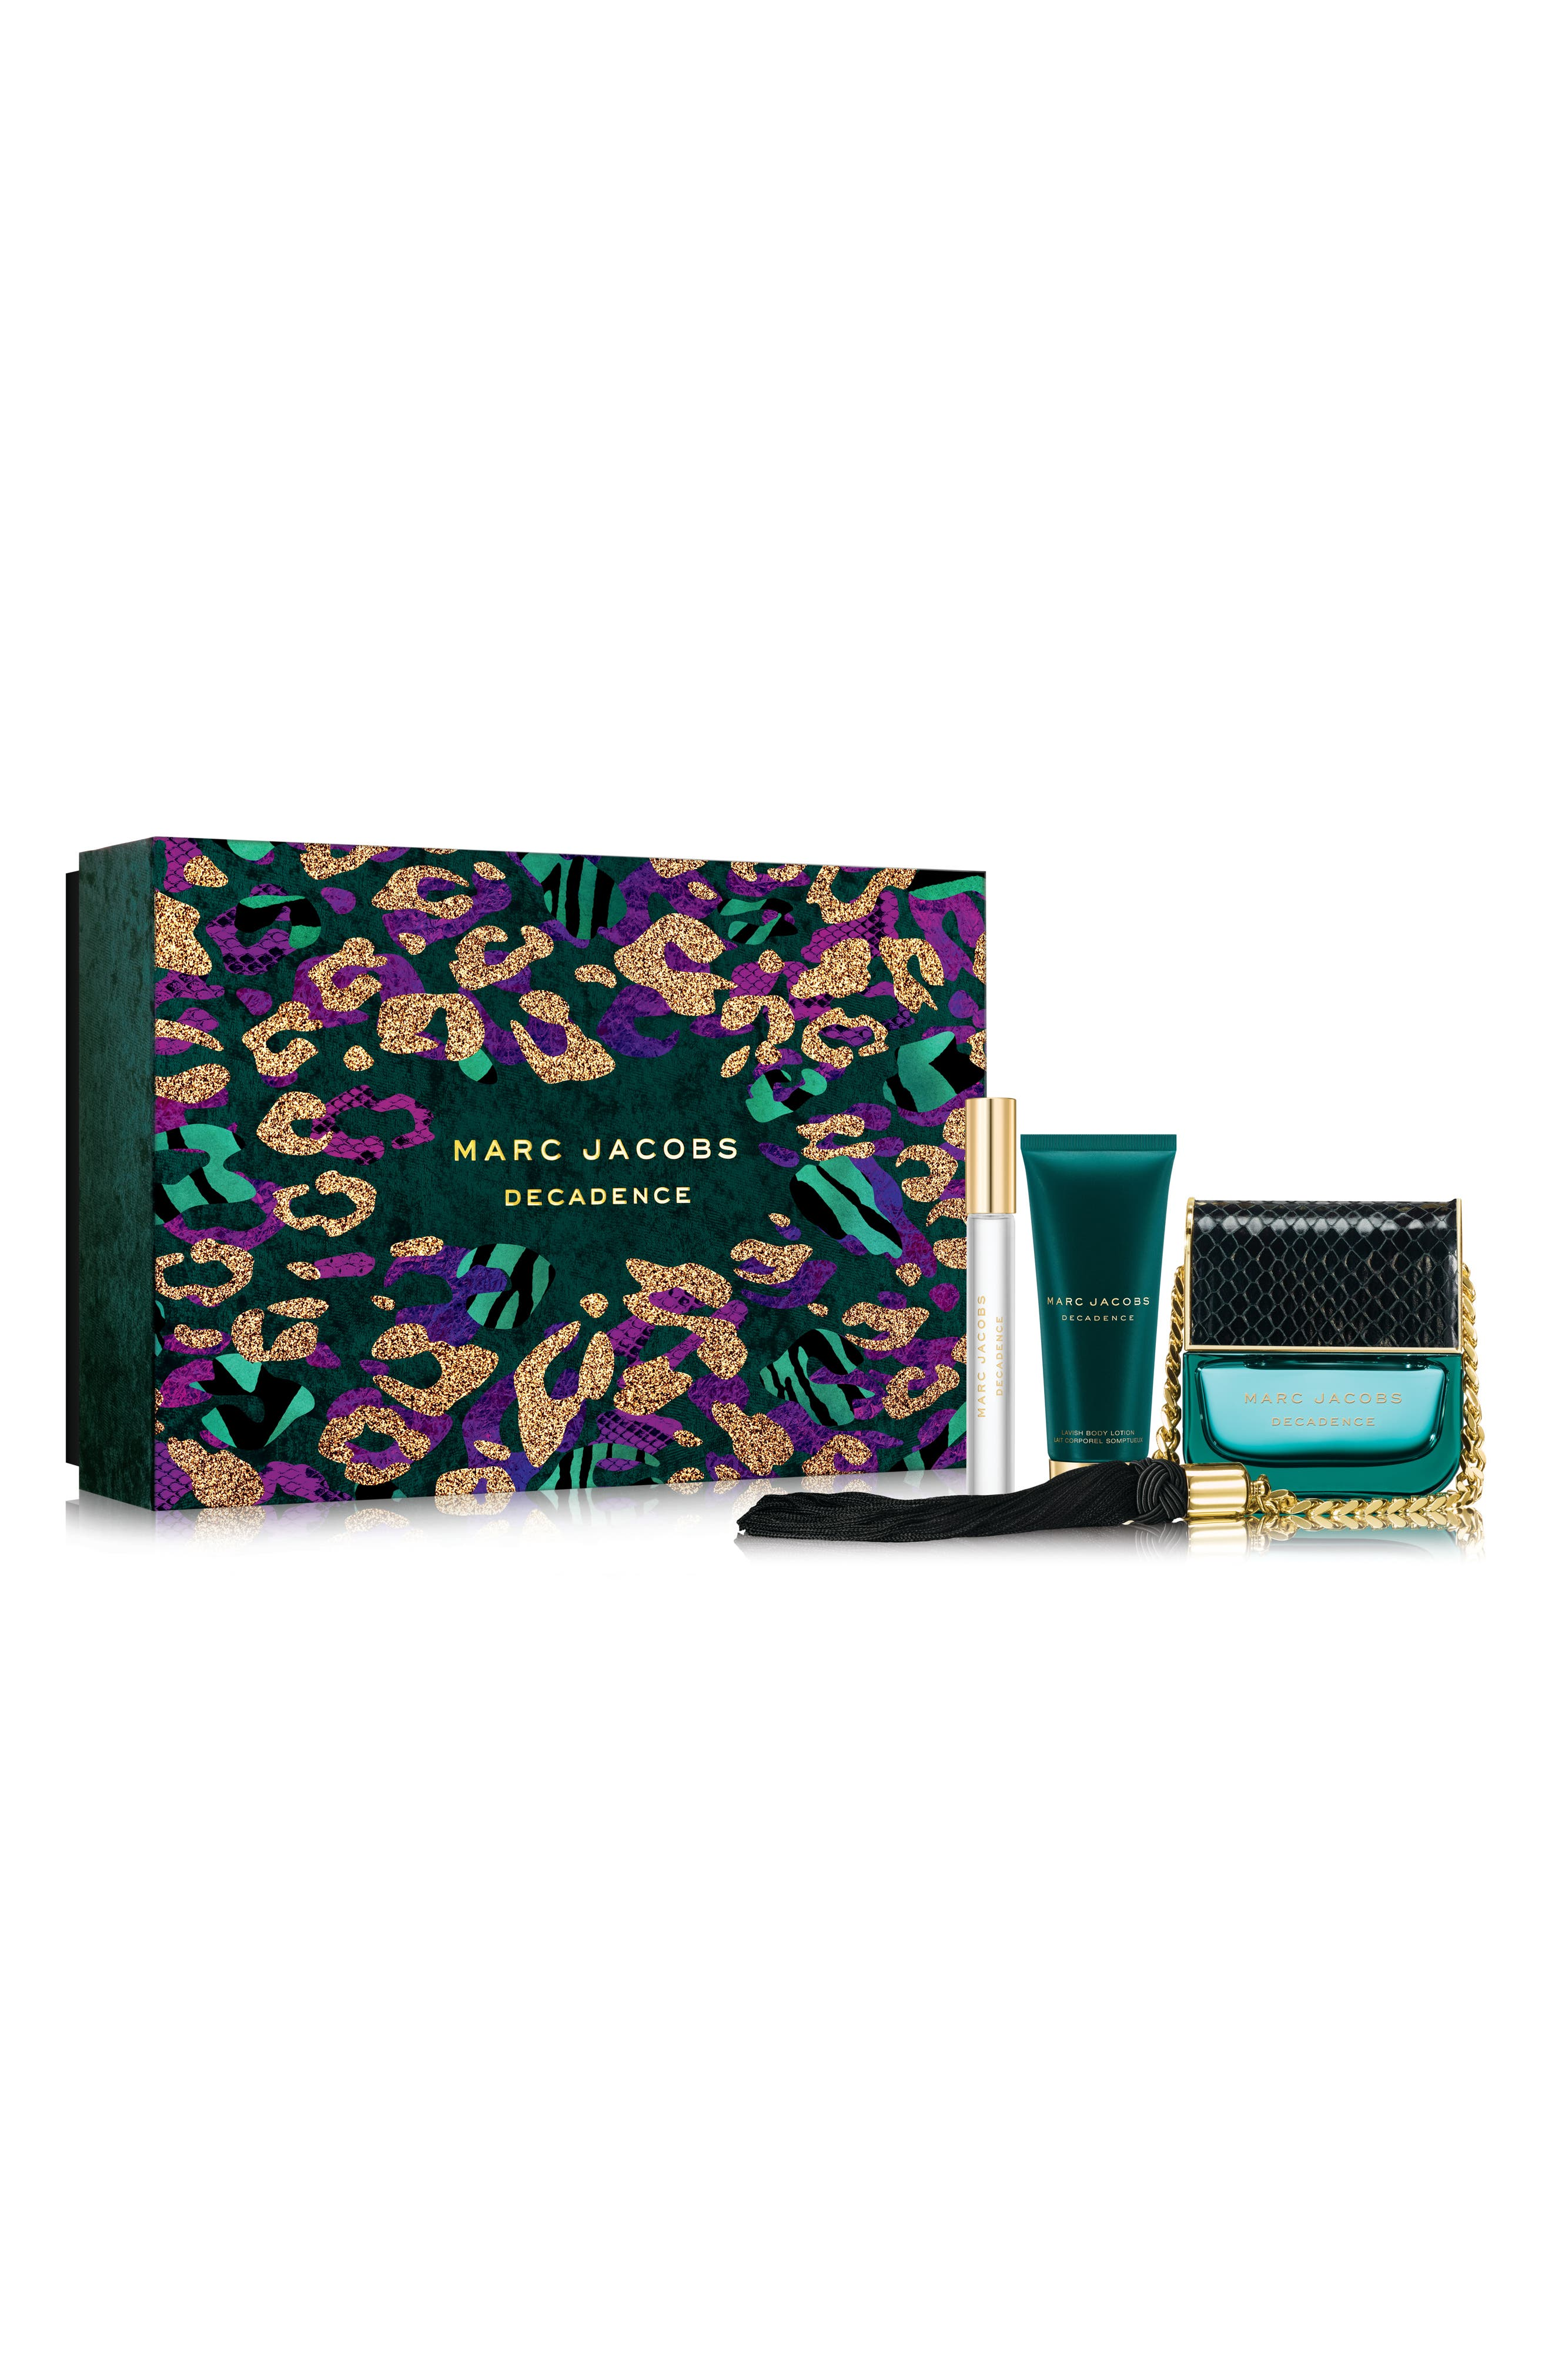 Alternate Image 1 Selected - MARC JACOBS Decadence Three-Piece Set ($177 Value)